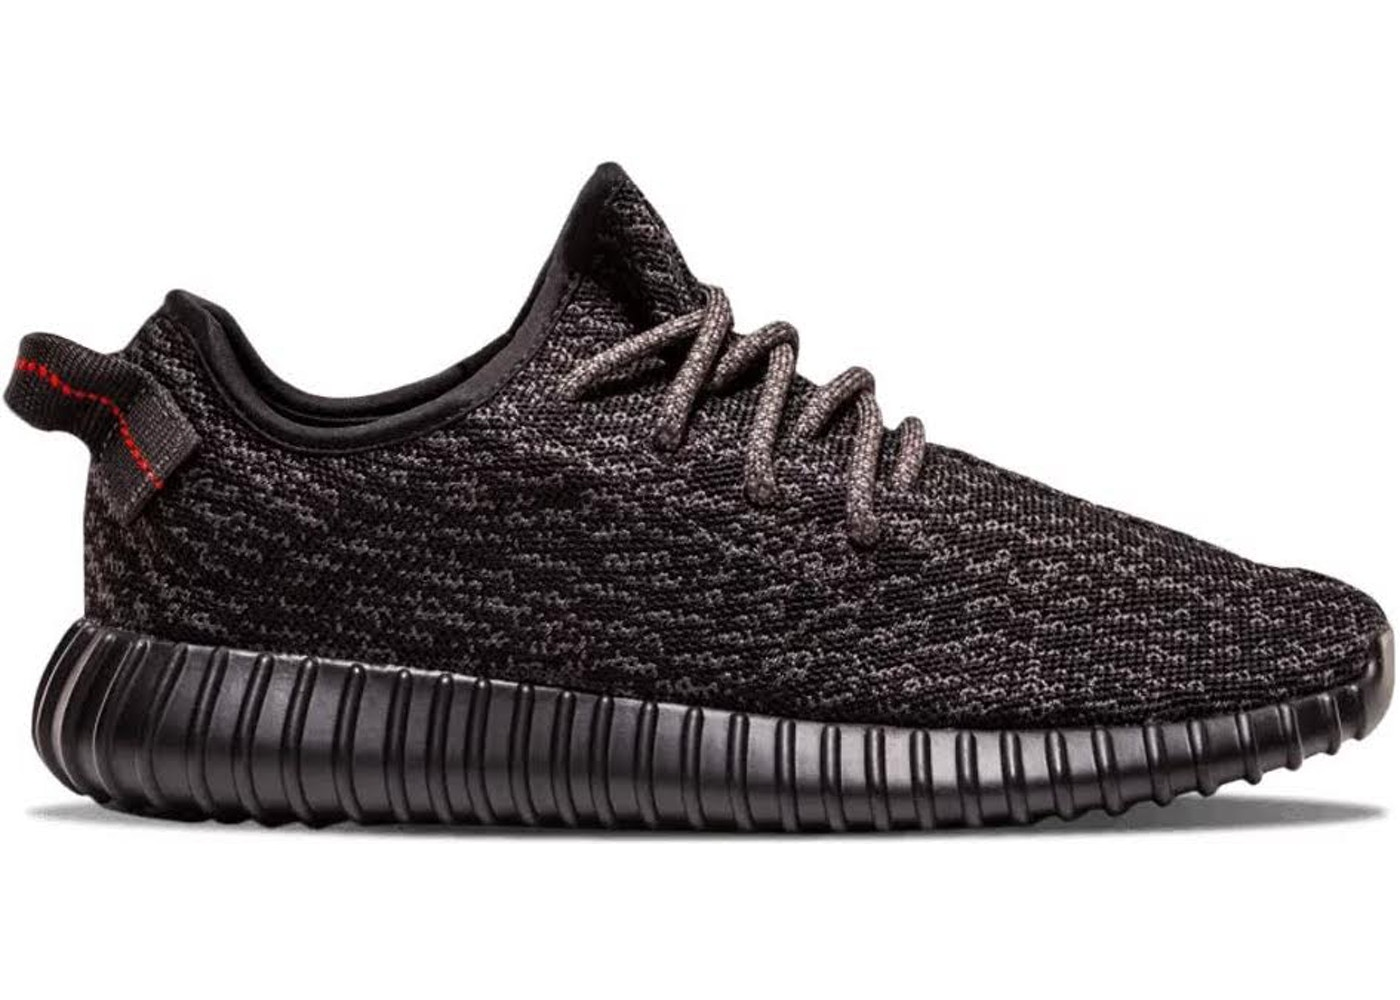 4bb775fa34c adidas Yeezy Boost 350 Pirate Black (2015) - AQ2659